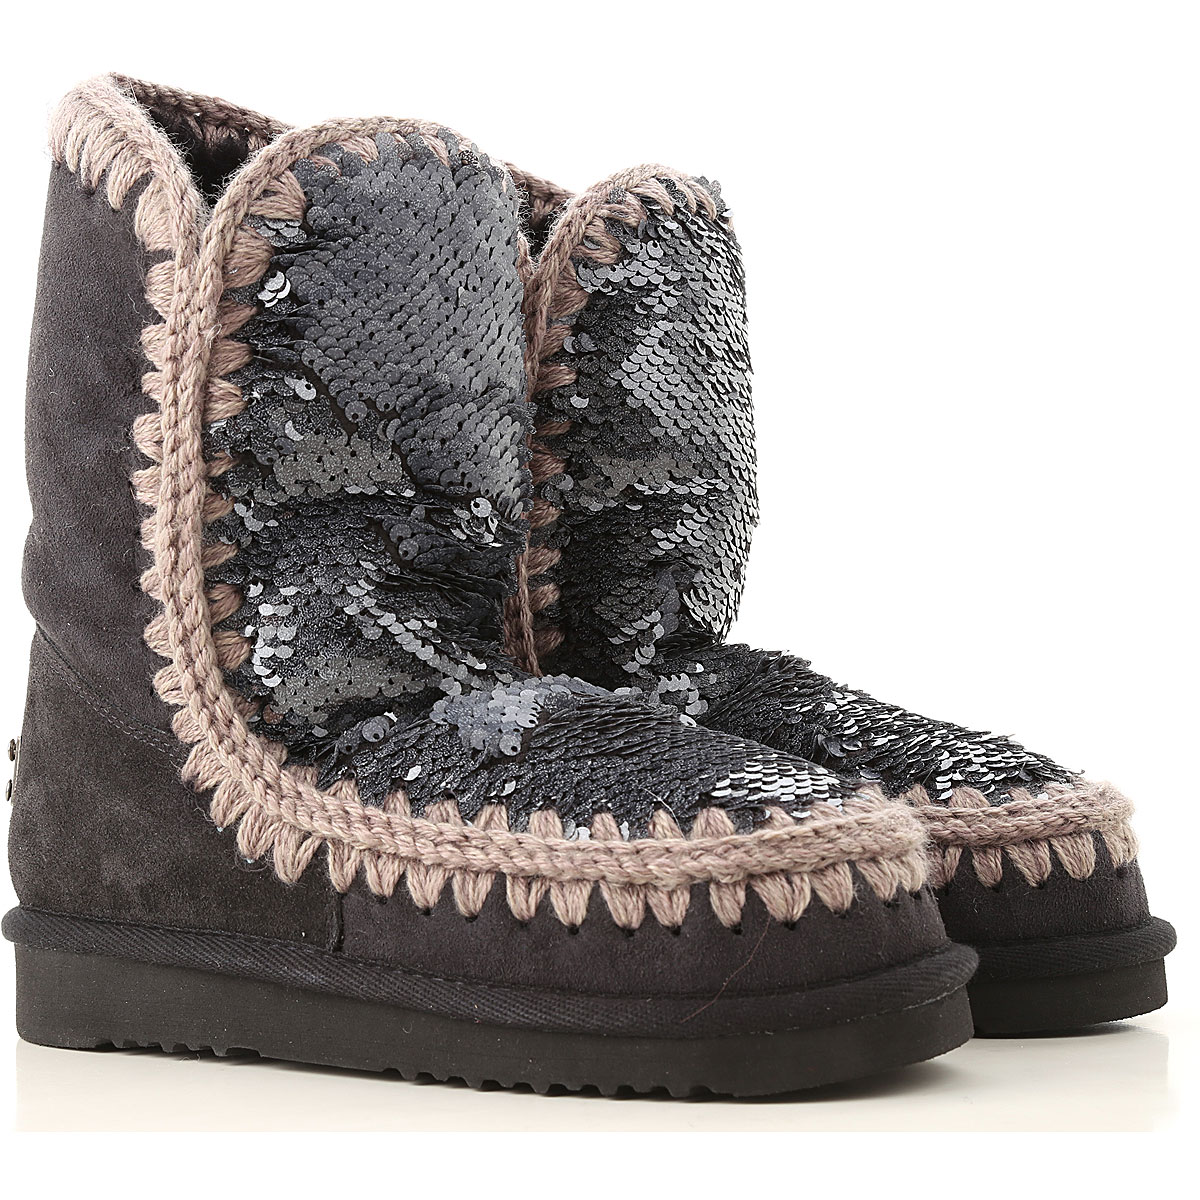 Image of Mou Boots for Women, Booties, Limited Edition, Anthracite Grey, Leather, 2017, EUR 36 - UK 3 - USA 5.5 EUR 37 - UK 4 - USA 6.5 EUR 38 - UK 5 - USA 7.5 EUR 39 - UK 6 - USA 8.5 EUR 40 - UK 7 - USA 9.5